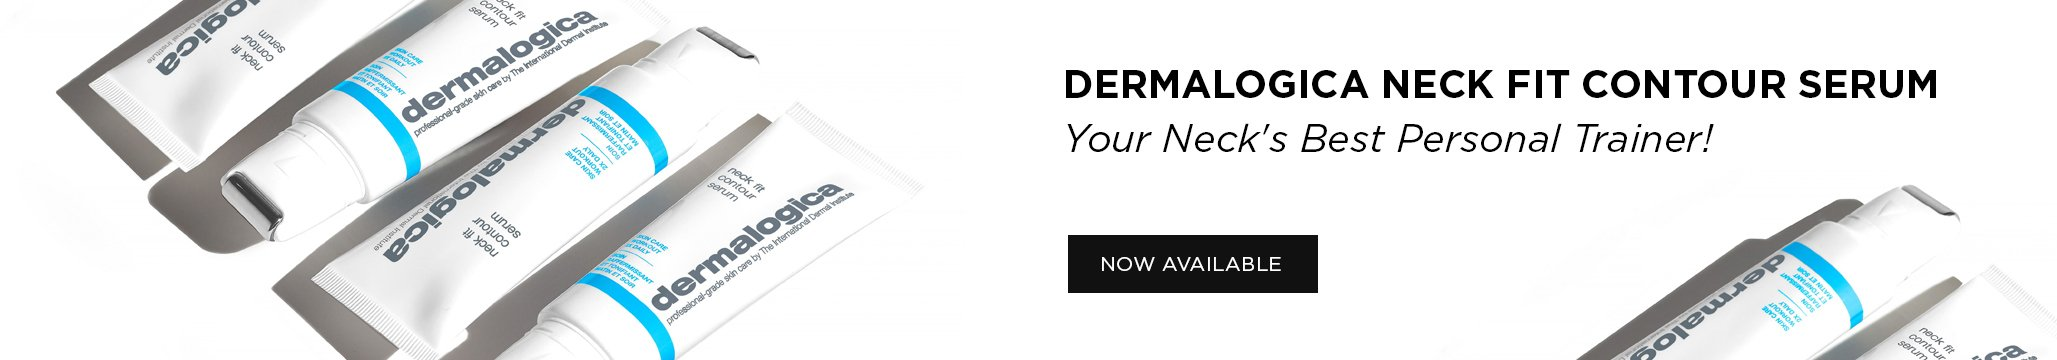 New Dermalogica Neck Fit Contour Serum